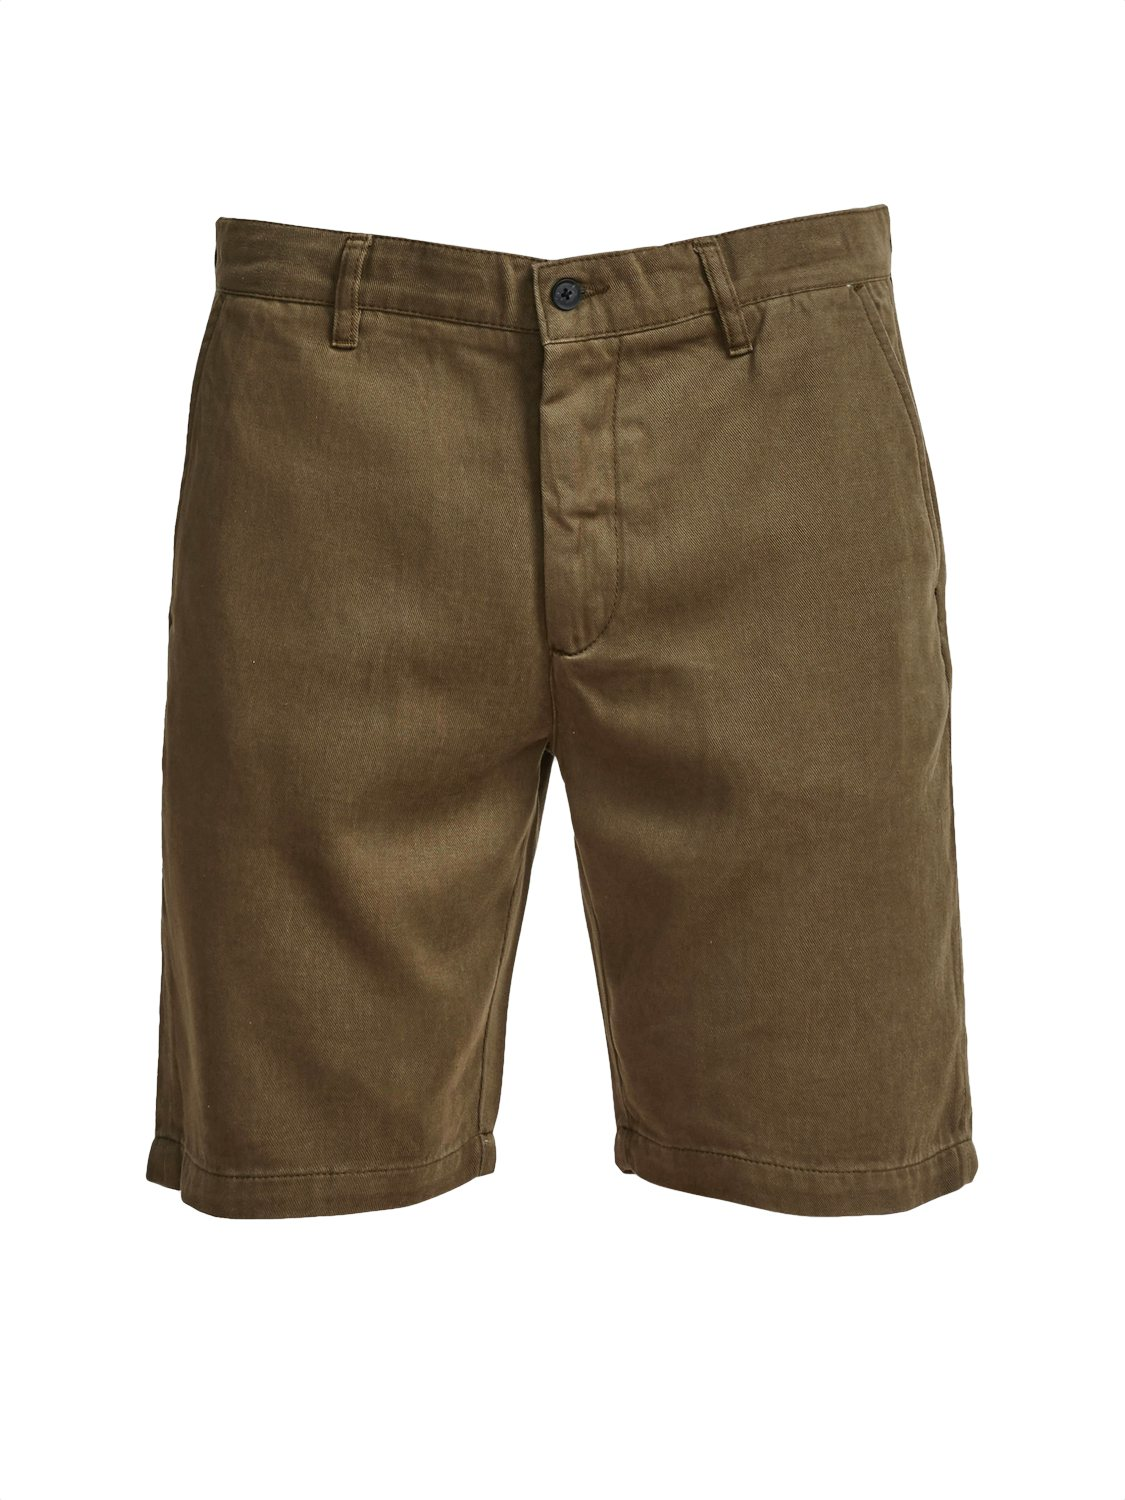 NN07 - CROWN SHORTS | Gate36 Hobro 1004 oliven